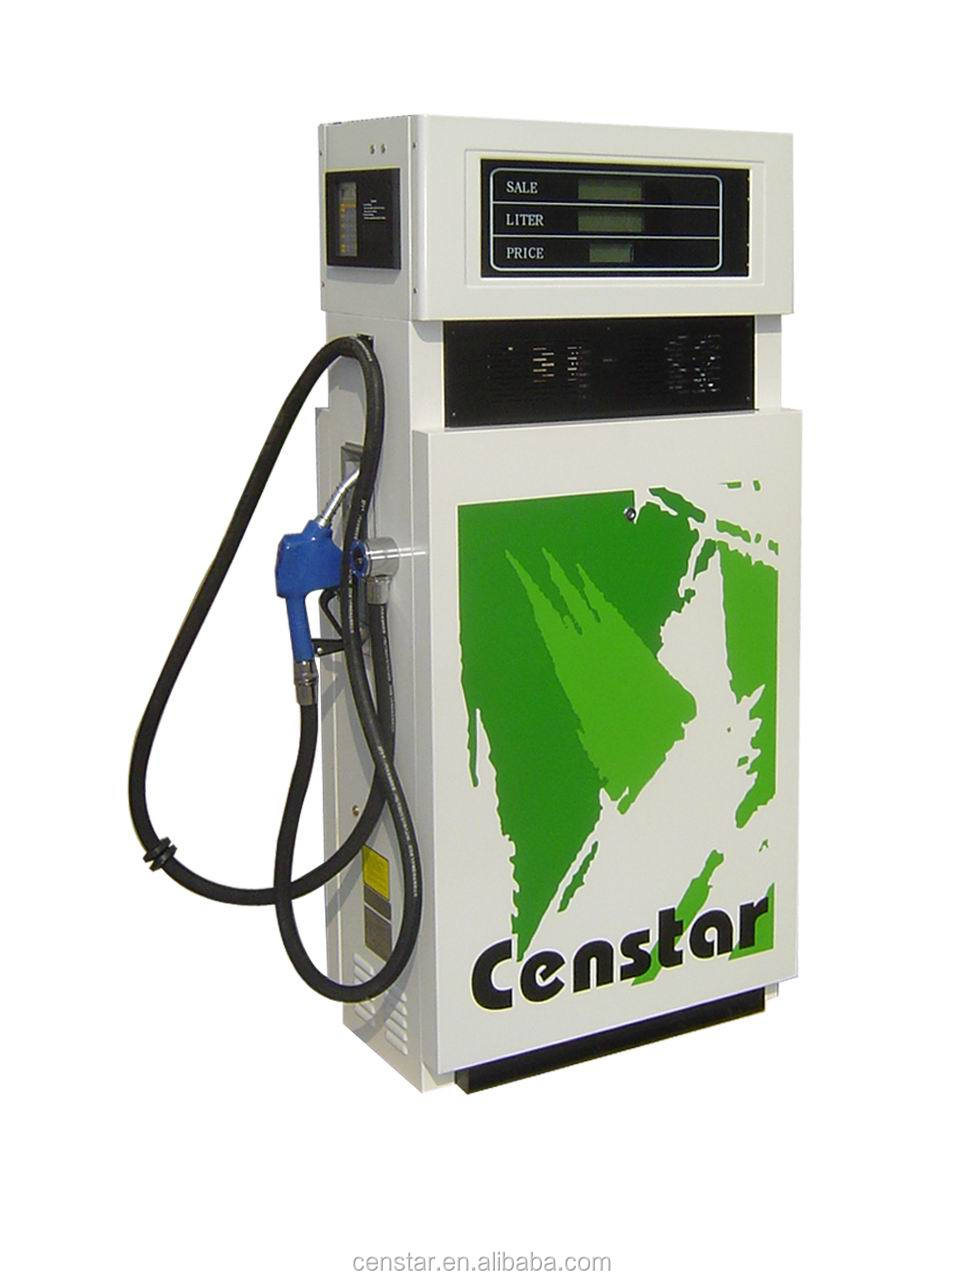 quality guaranteed famous brand petrol pump machine price, excellent brand petrol pump for sale